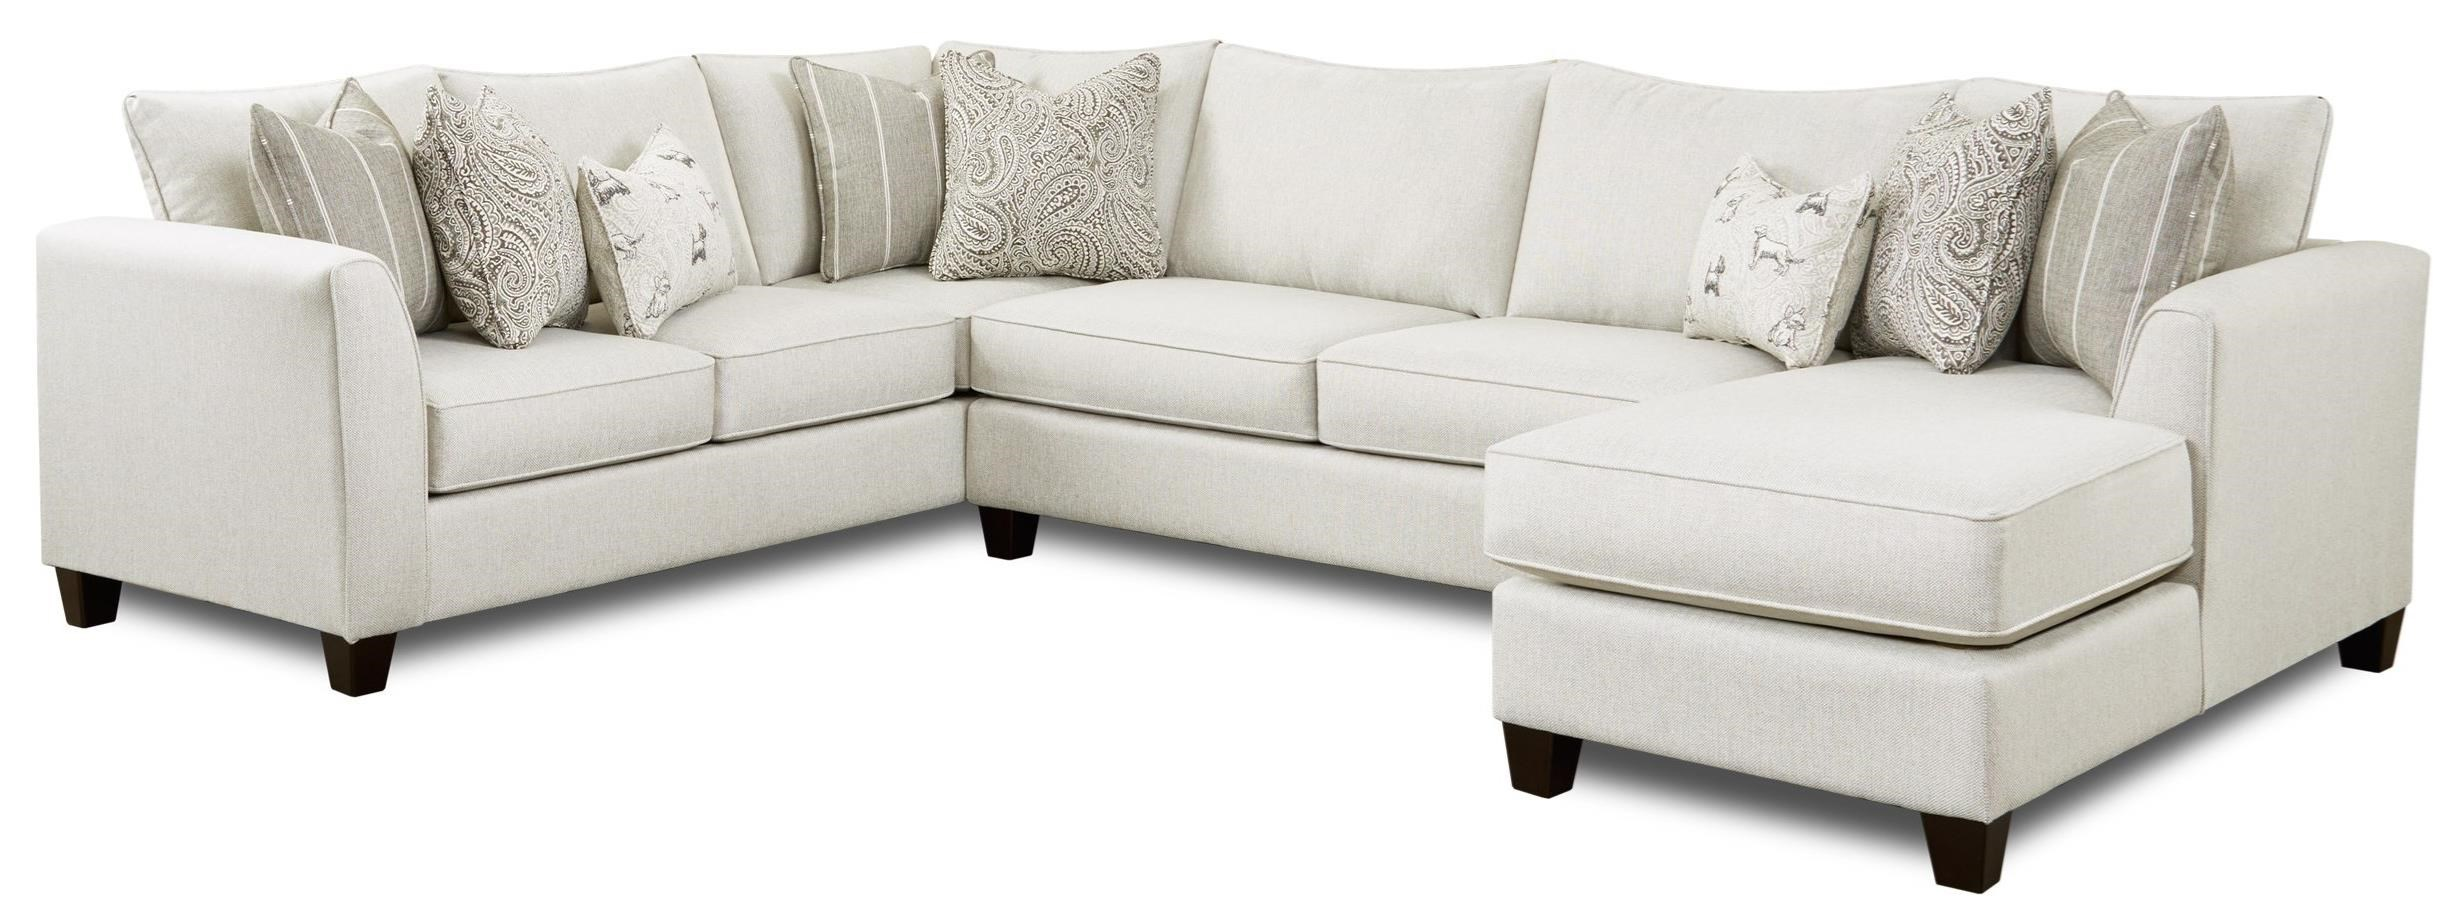 28 3-Piece Sectional with Chaise by Fusion Furniture at Prime Brothers Furniture